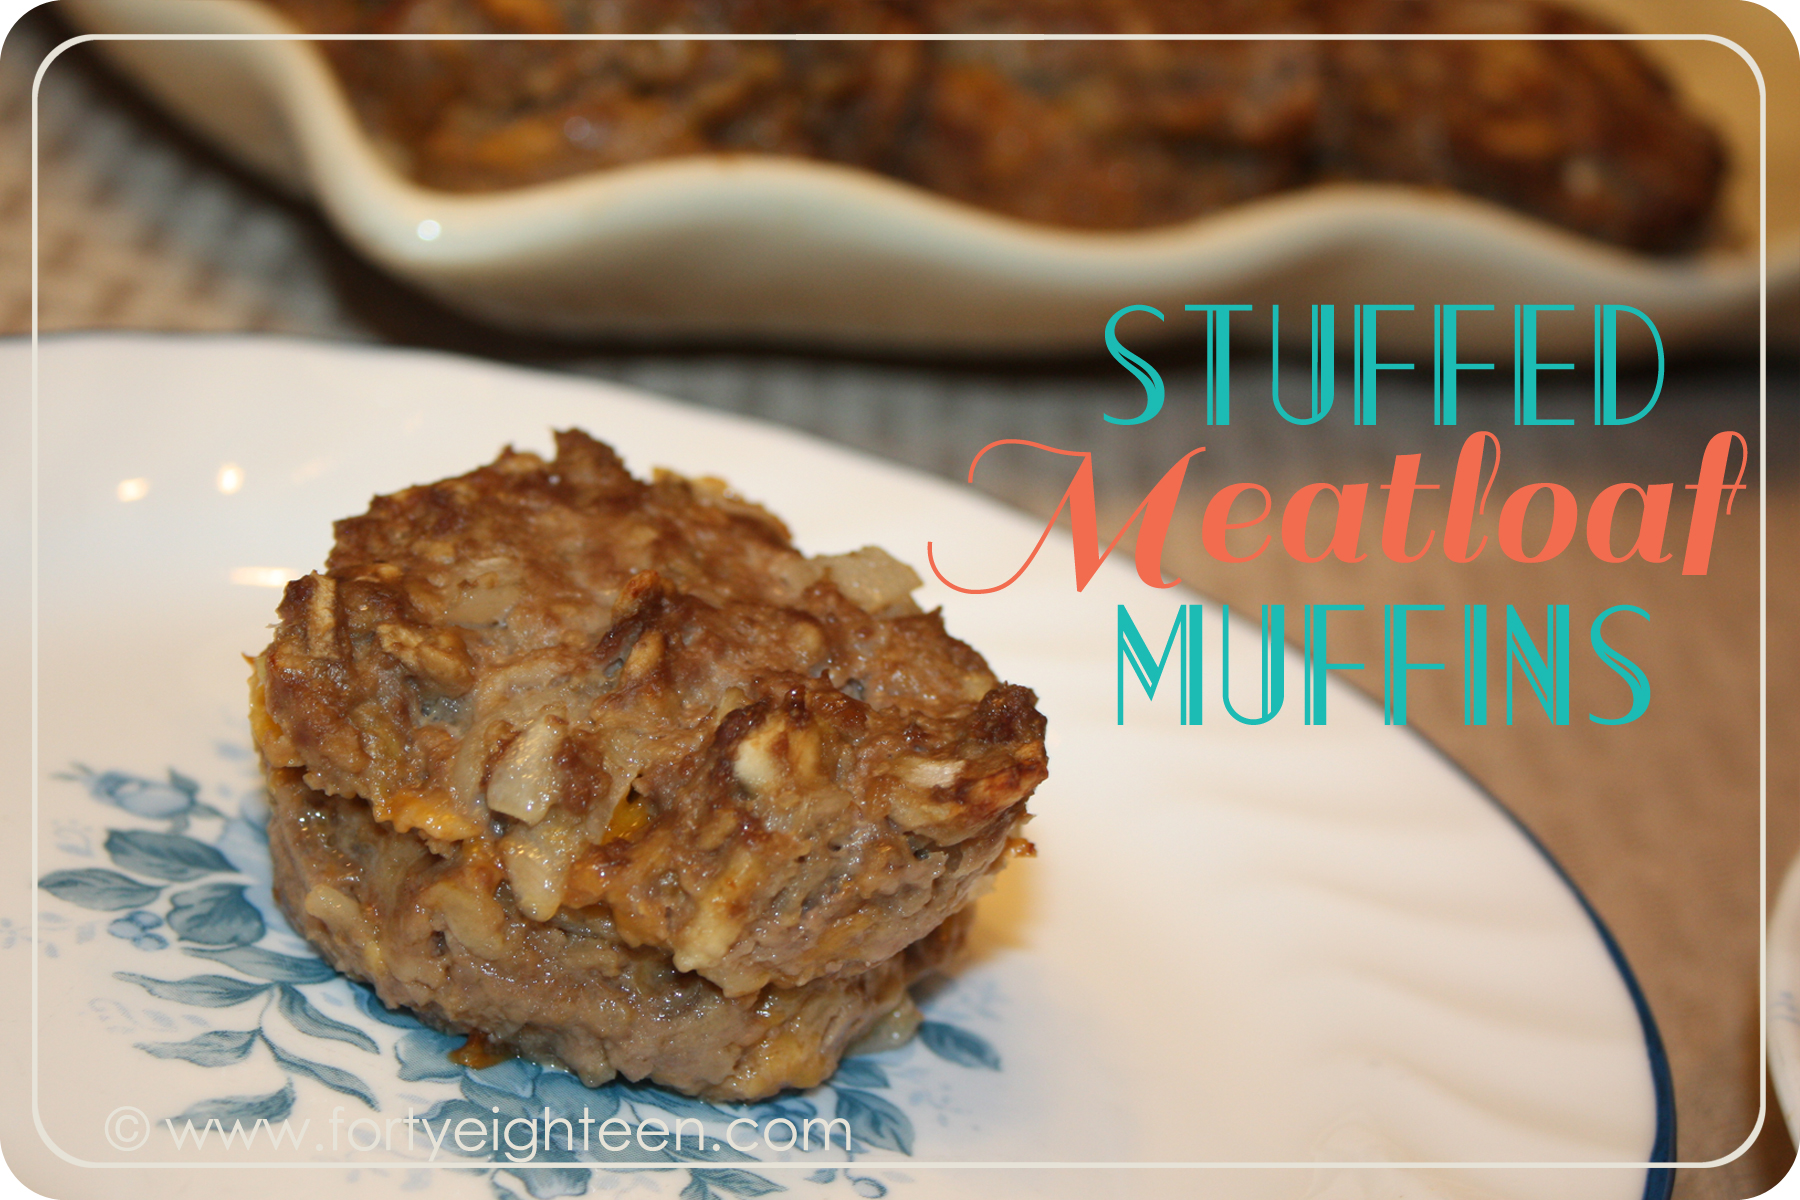 My family cheers when I make these fabulous Stuffed Meatloaf Muffins - they freeze well, too!